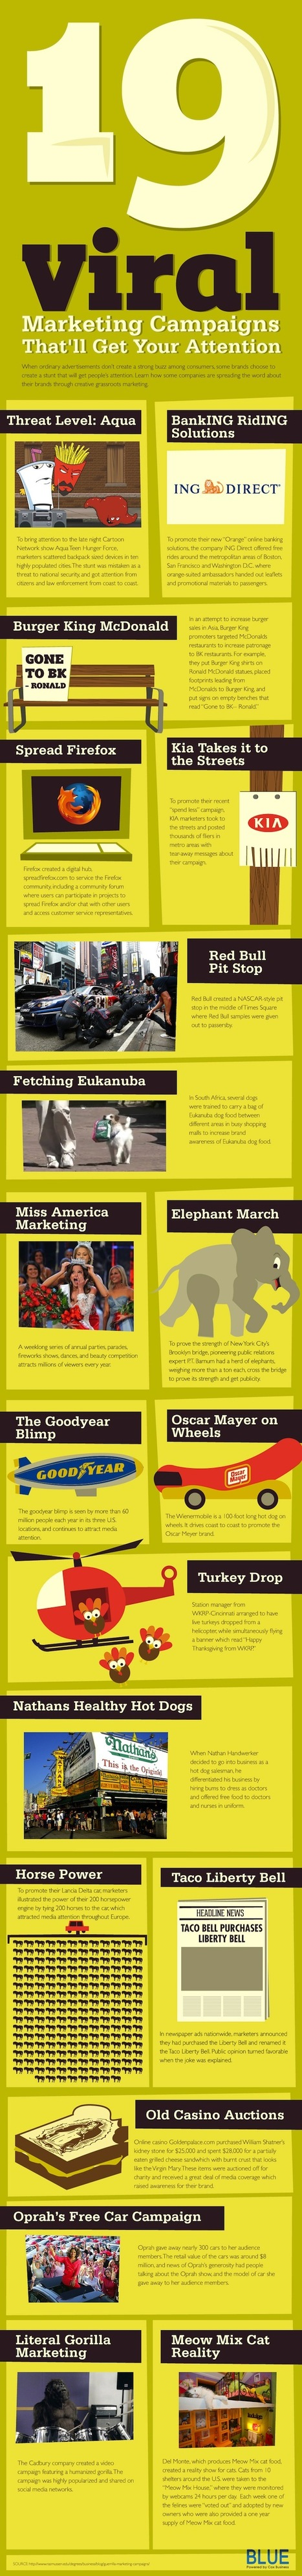 19 Viral Marketing Campaigns to Get Your Company Rocking on Top [Infographic] | All Infographics | Creatives on Marketing & Design | Scoop.it